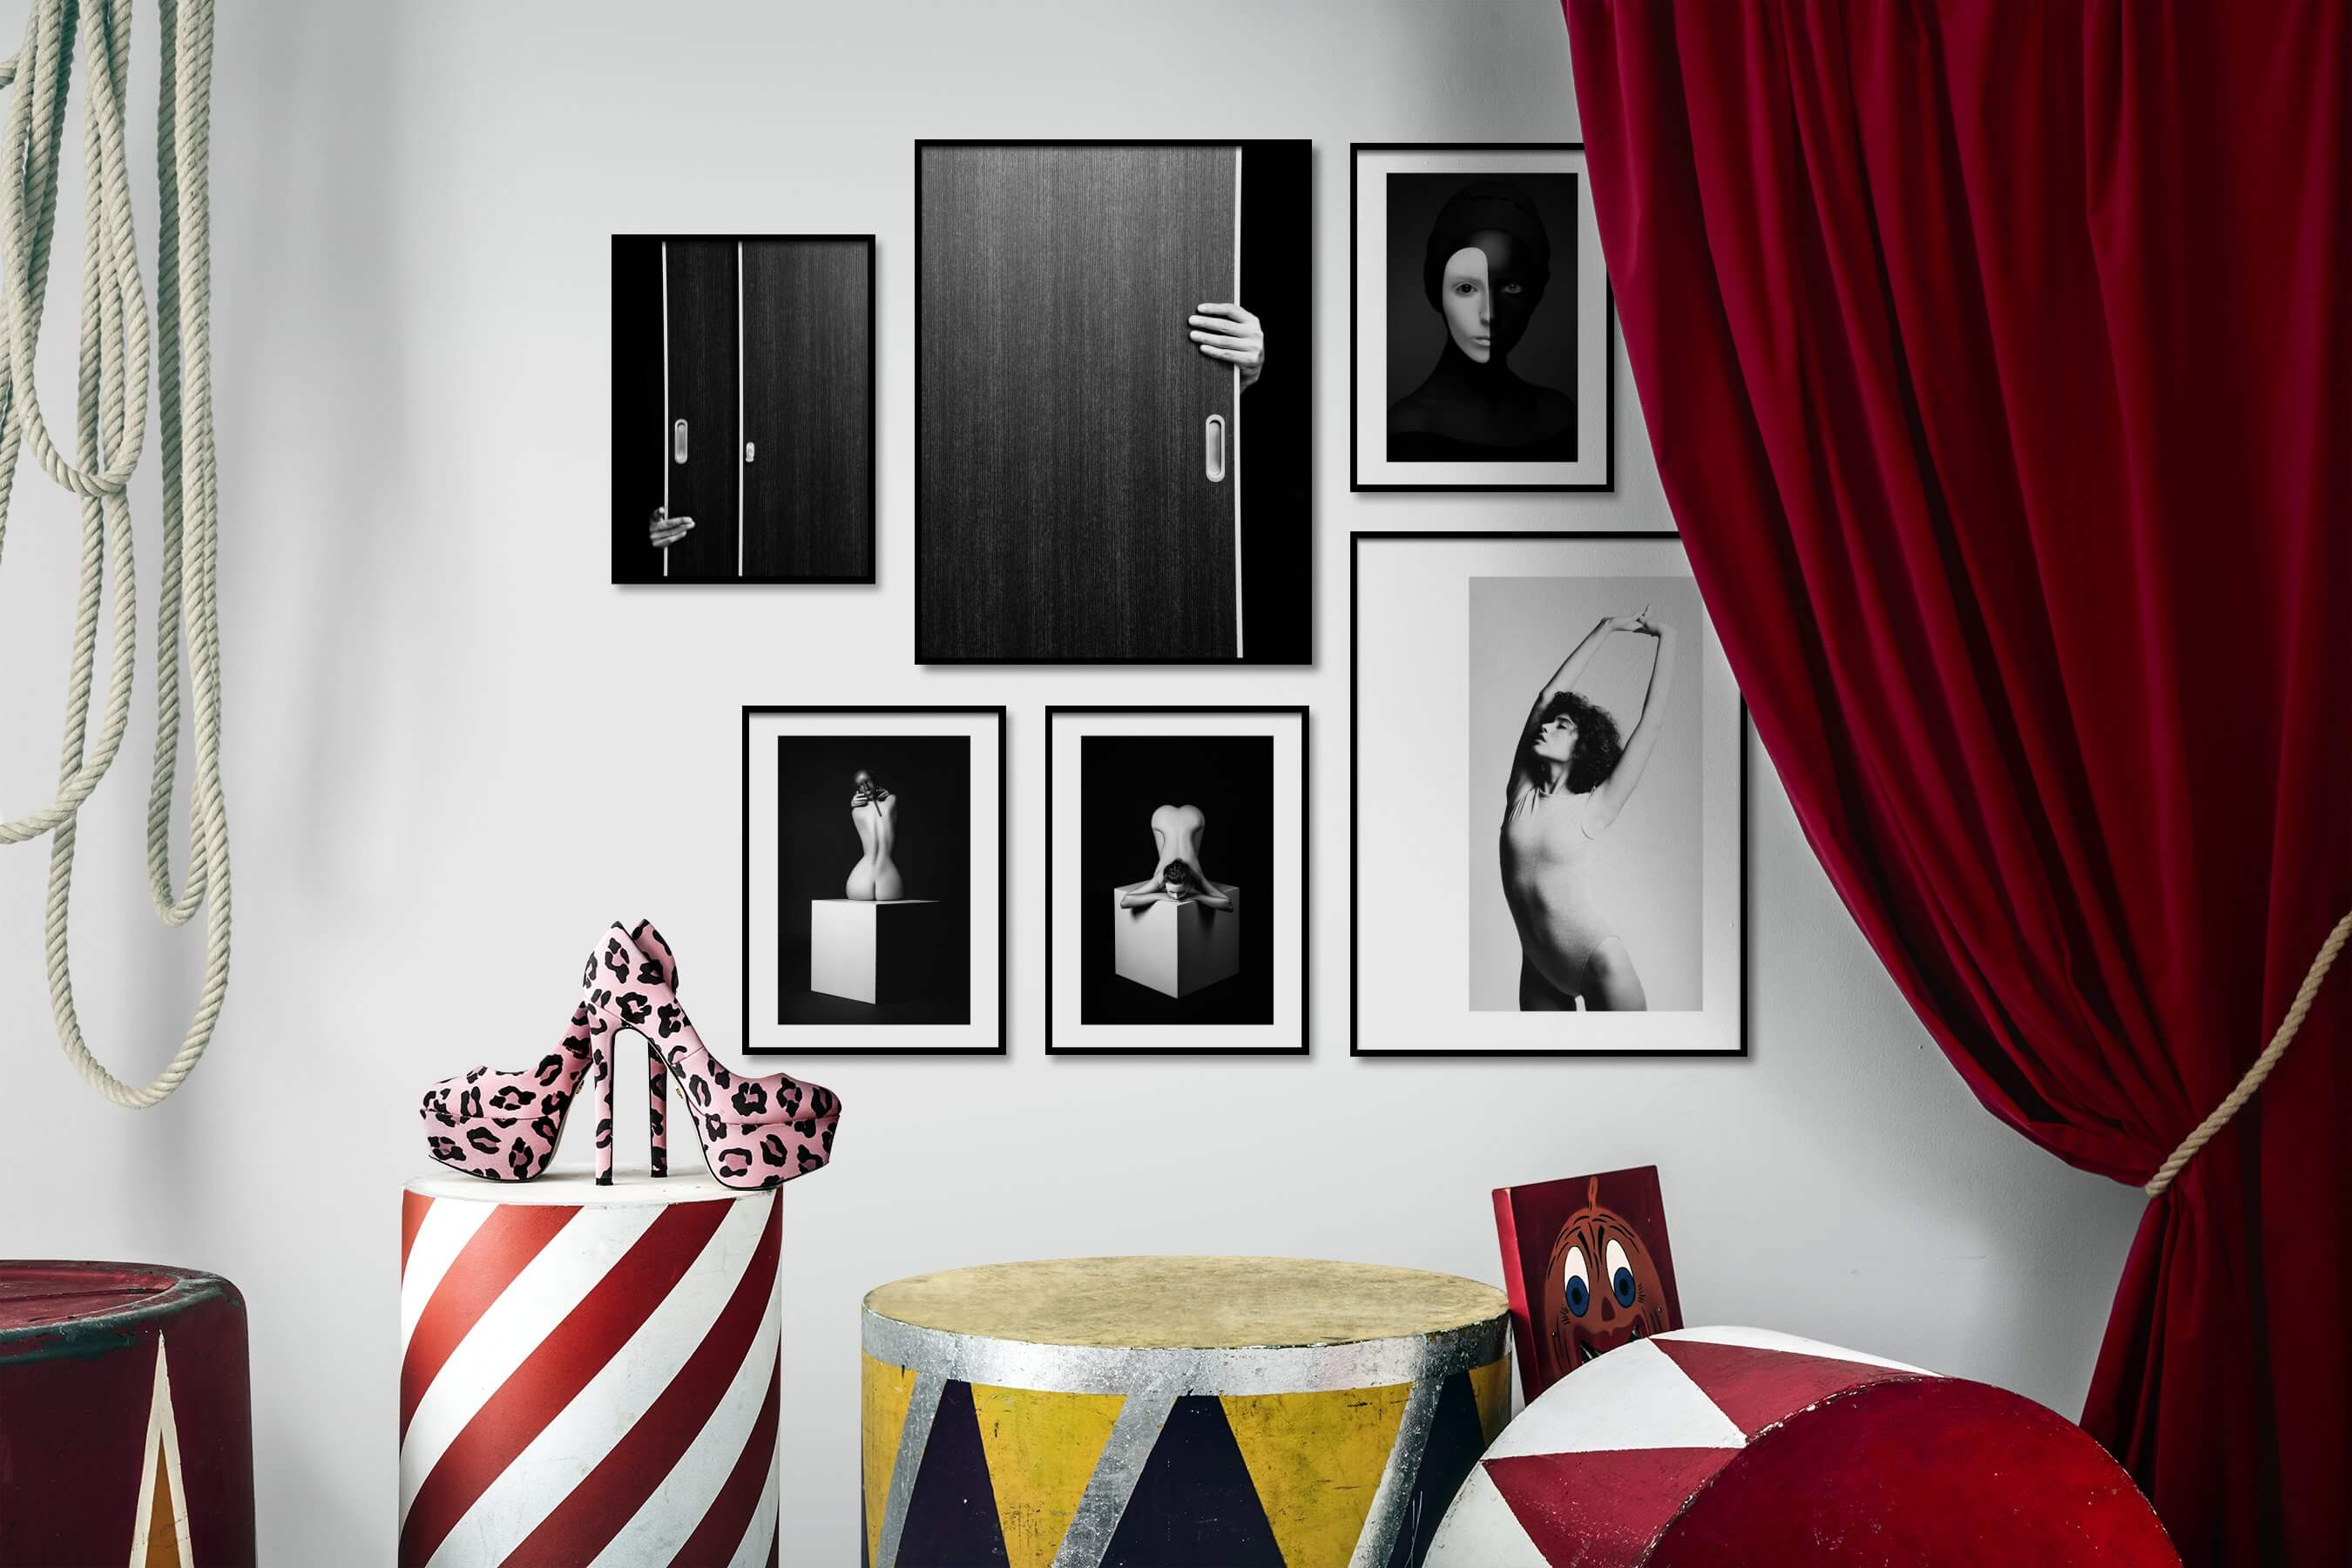 Gallery wall idea with six framed pictures arranged on a wall depicting Black & White, For the Minimalist, Artsy, Fashion & Beauty, and Mindfulness